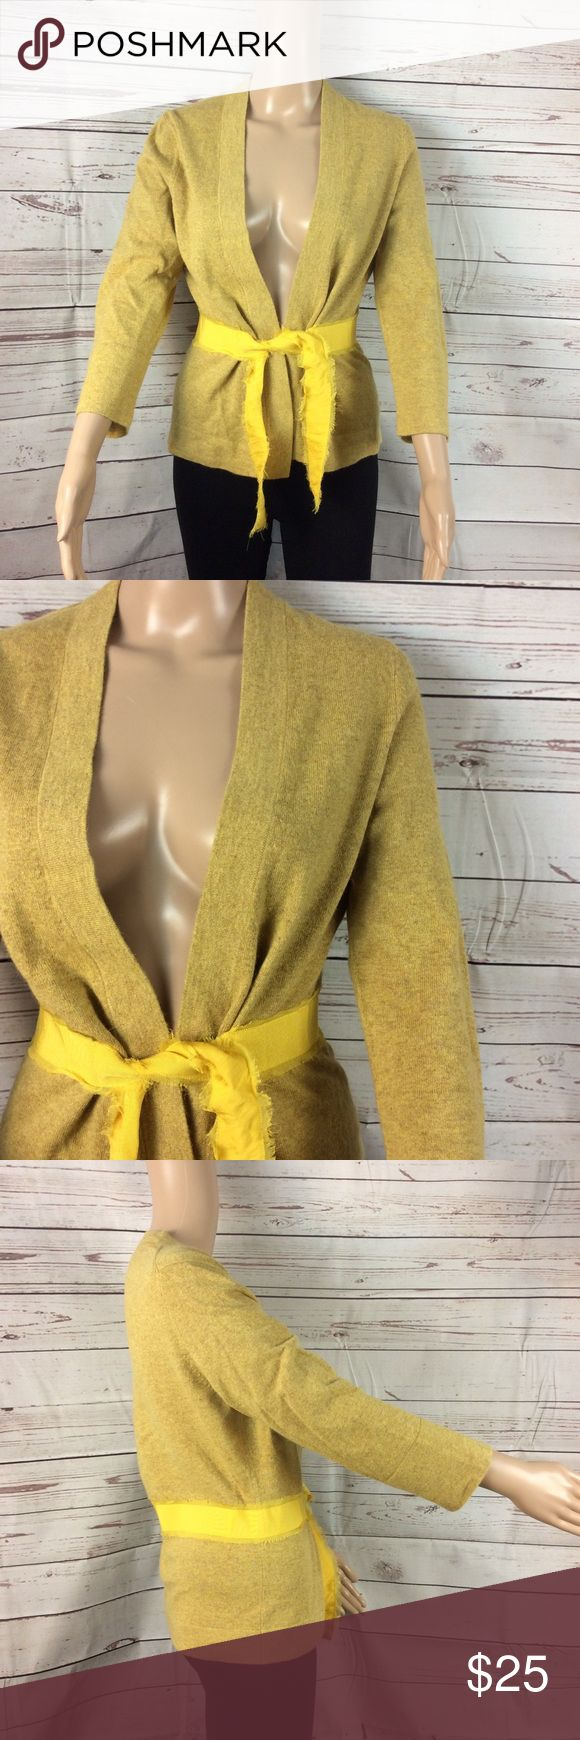 J.crew Harvest gold cardigan w/ribbon belt detail J.crew harvest gold cardigan with yellow ribbon detail Attached ribbon belt with raw edge detail Wide cuff Three-quarter sleeve Wool blend Size large Link from top to bottom 23 inches Armpit to armpit 17 inches Arm length 19 inches This is a preowned item in good preowned condition J. Crew Sweaters Cardigans